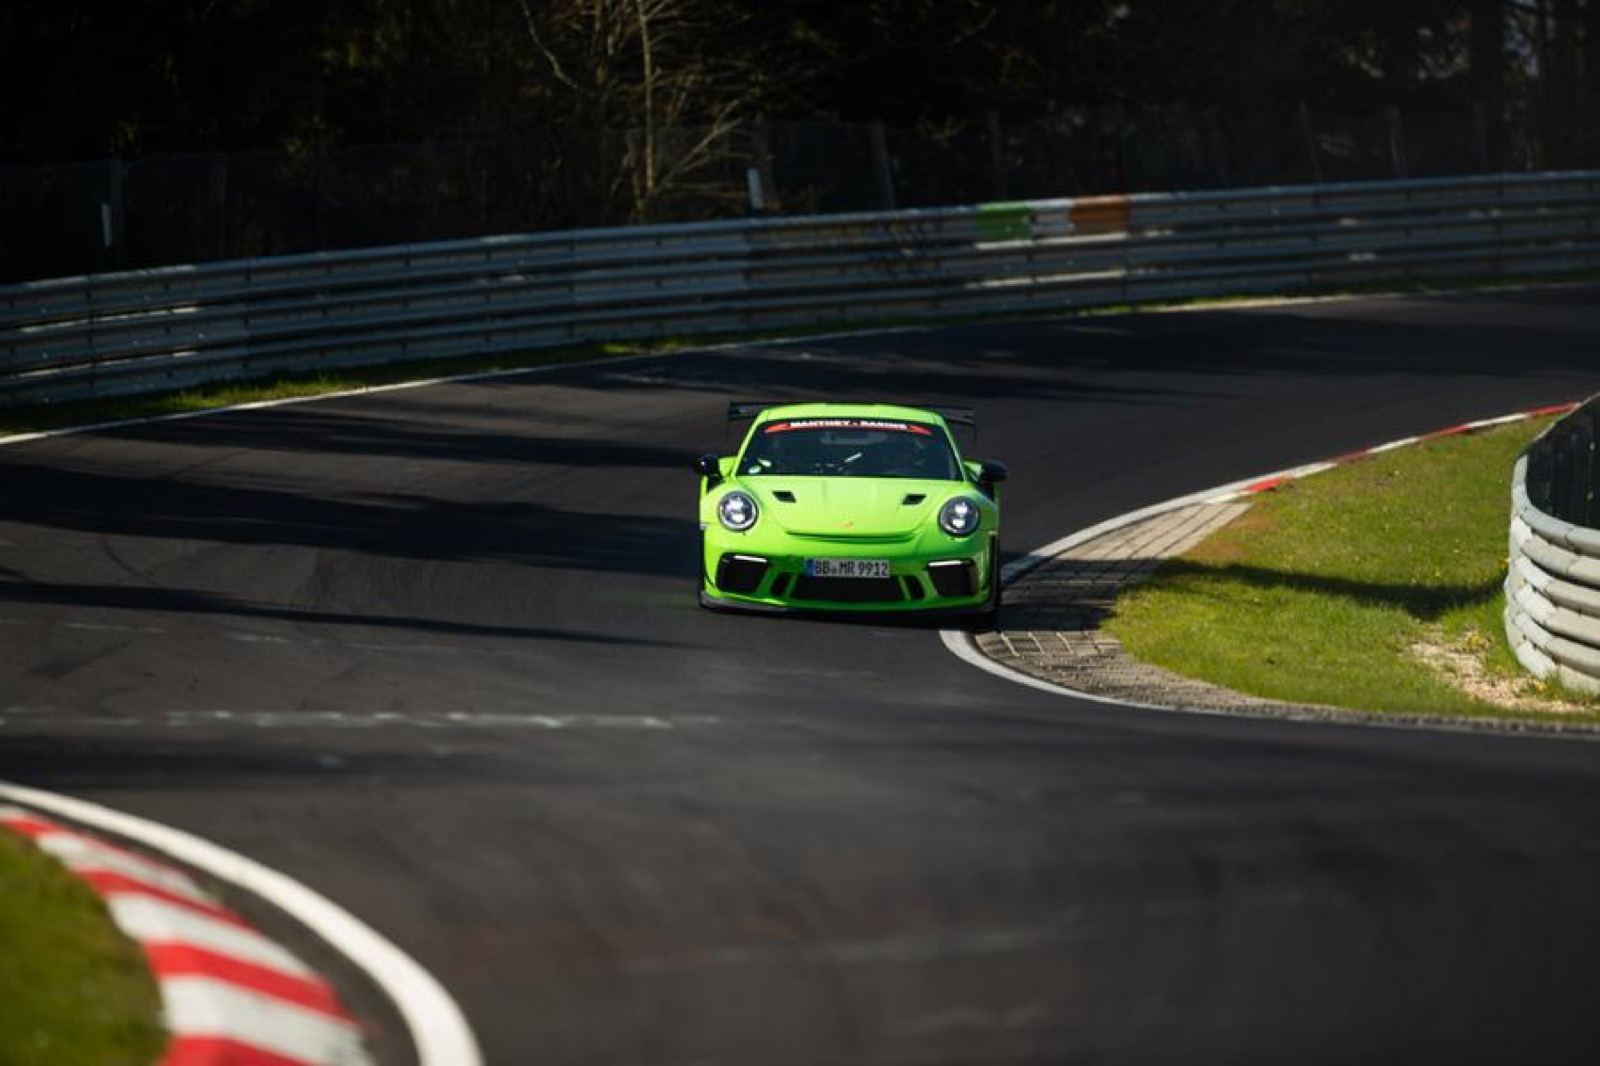 Porsche-911-GT3-RS-MR-by-Manthey-Racing-6